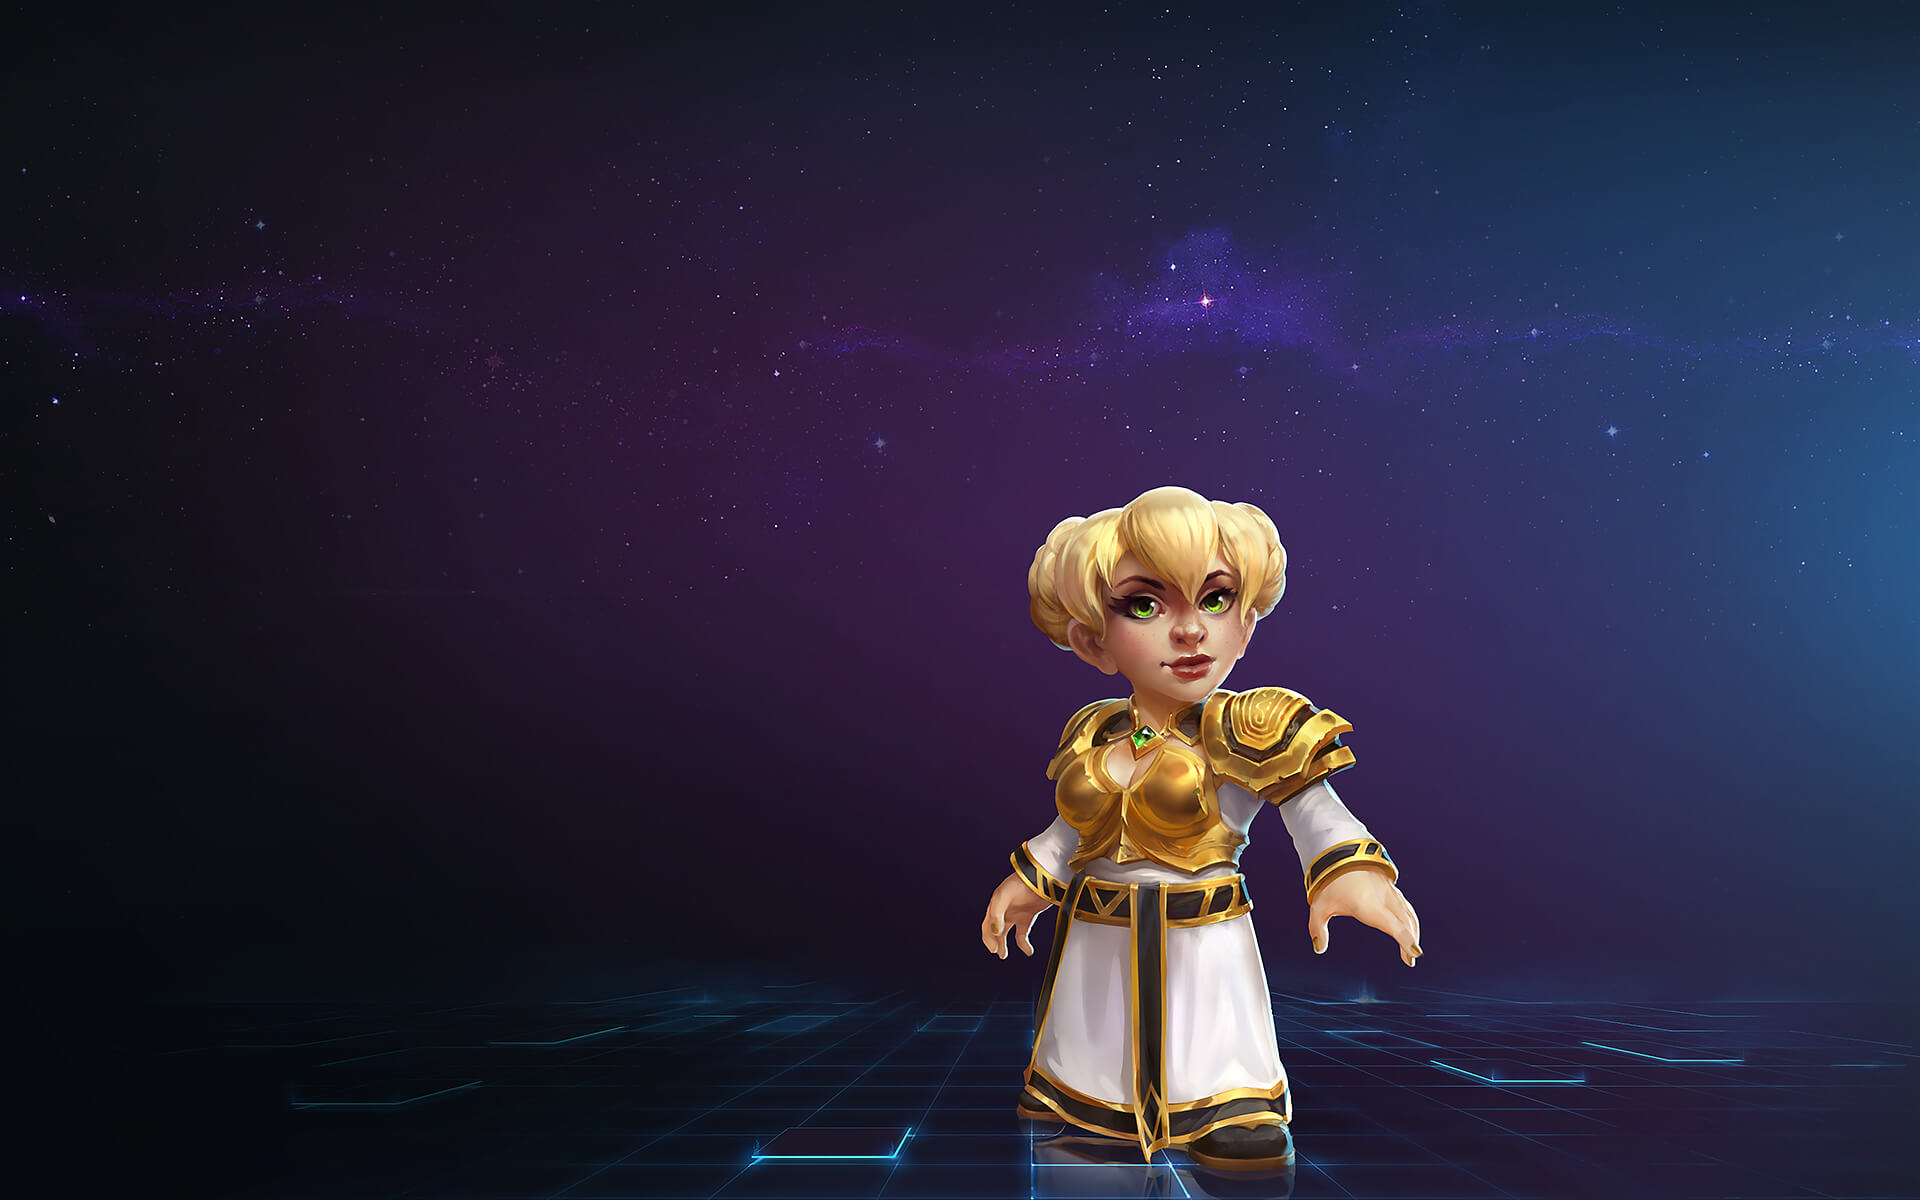 World of warcraft chromie the gnome nude hentai vids